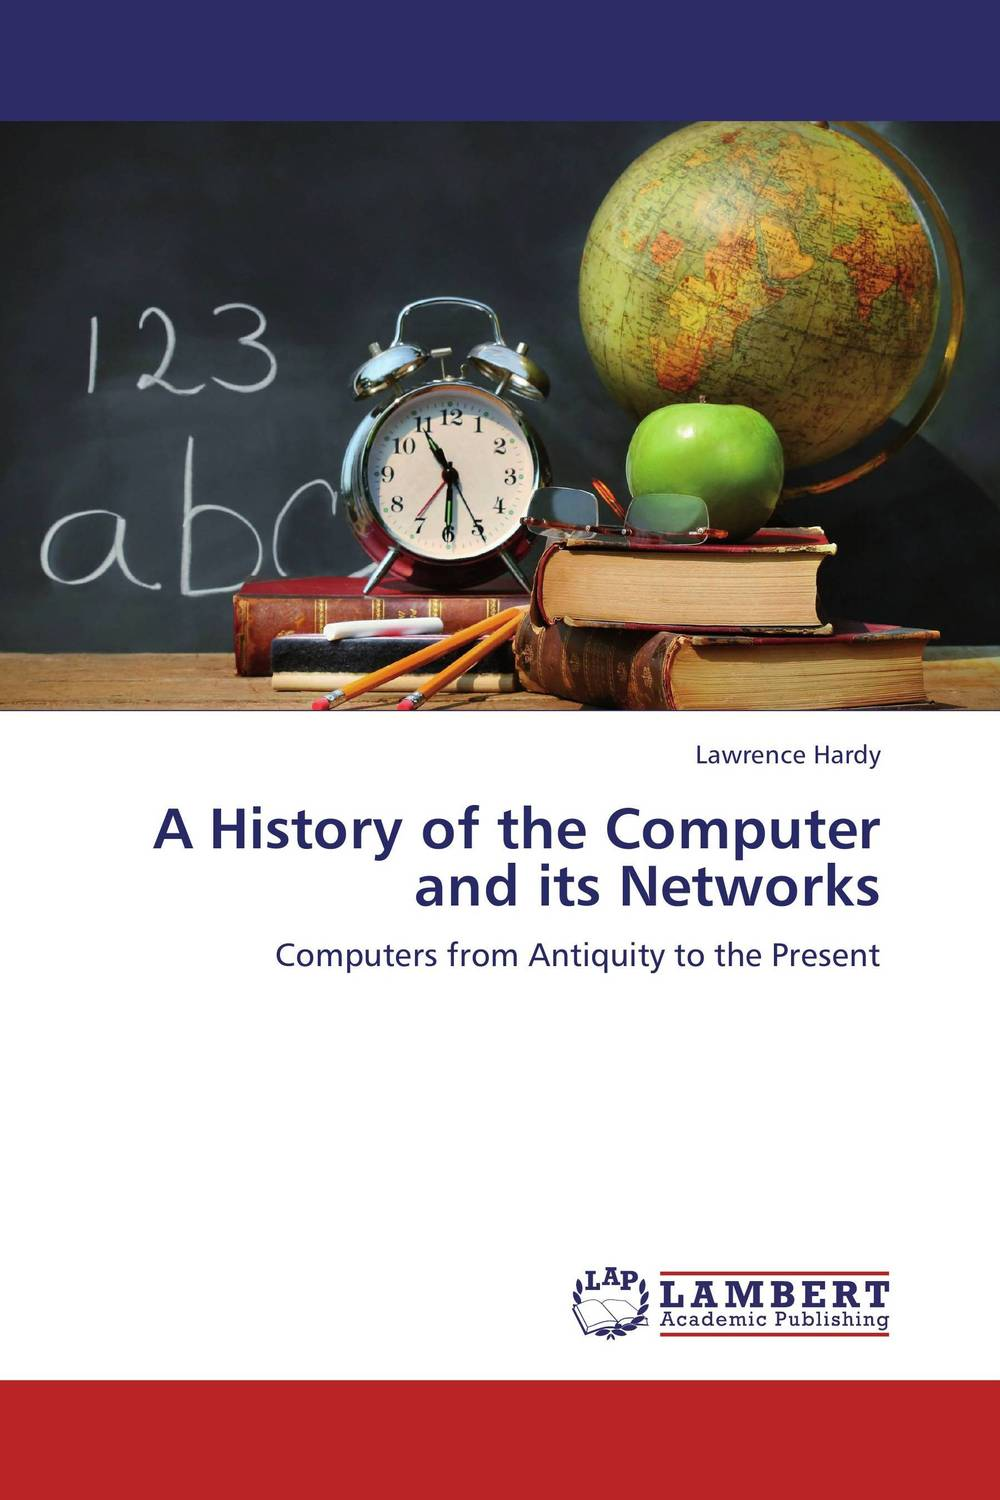 купить A History of the Computer and its Networks недорого